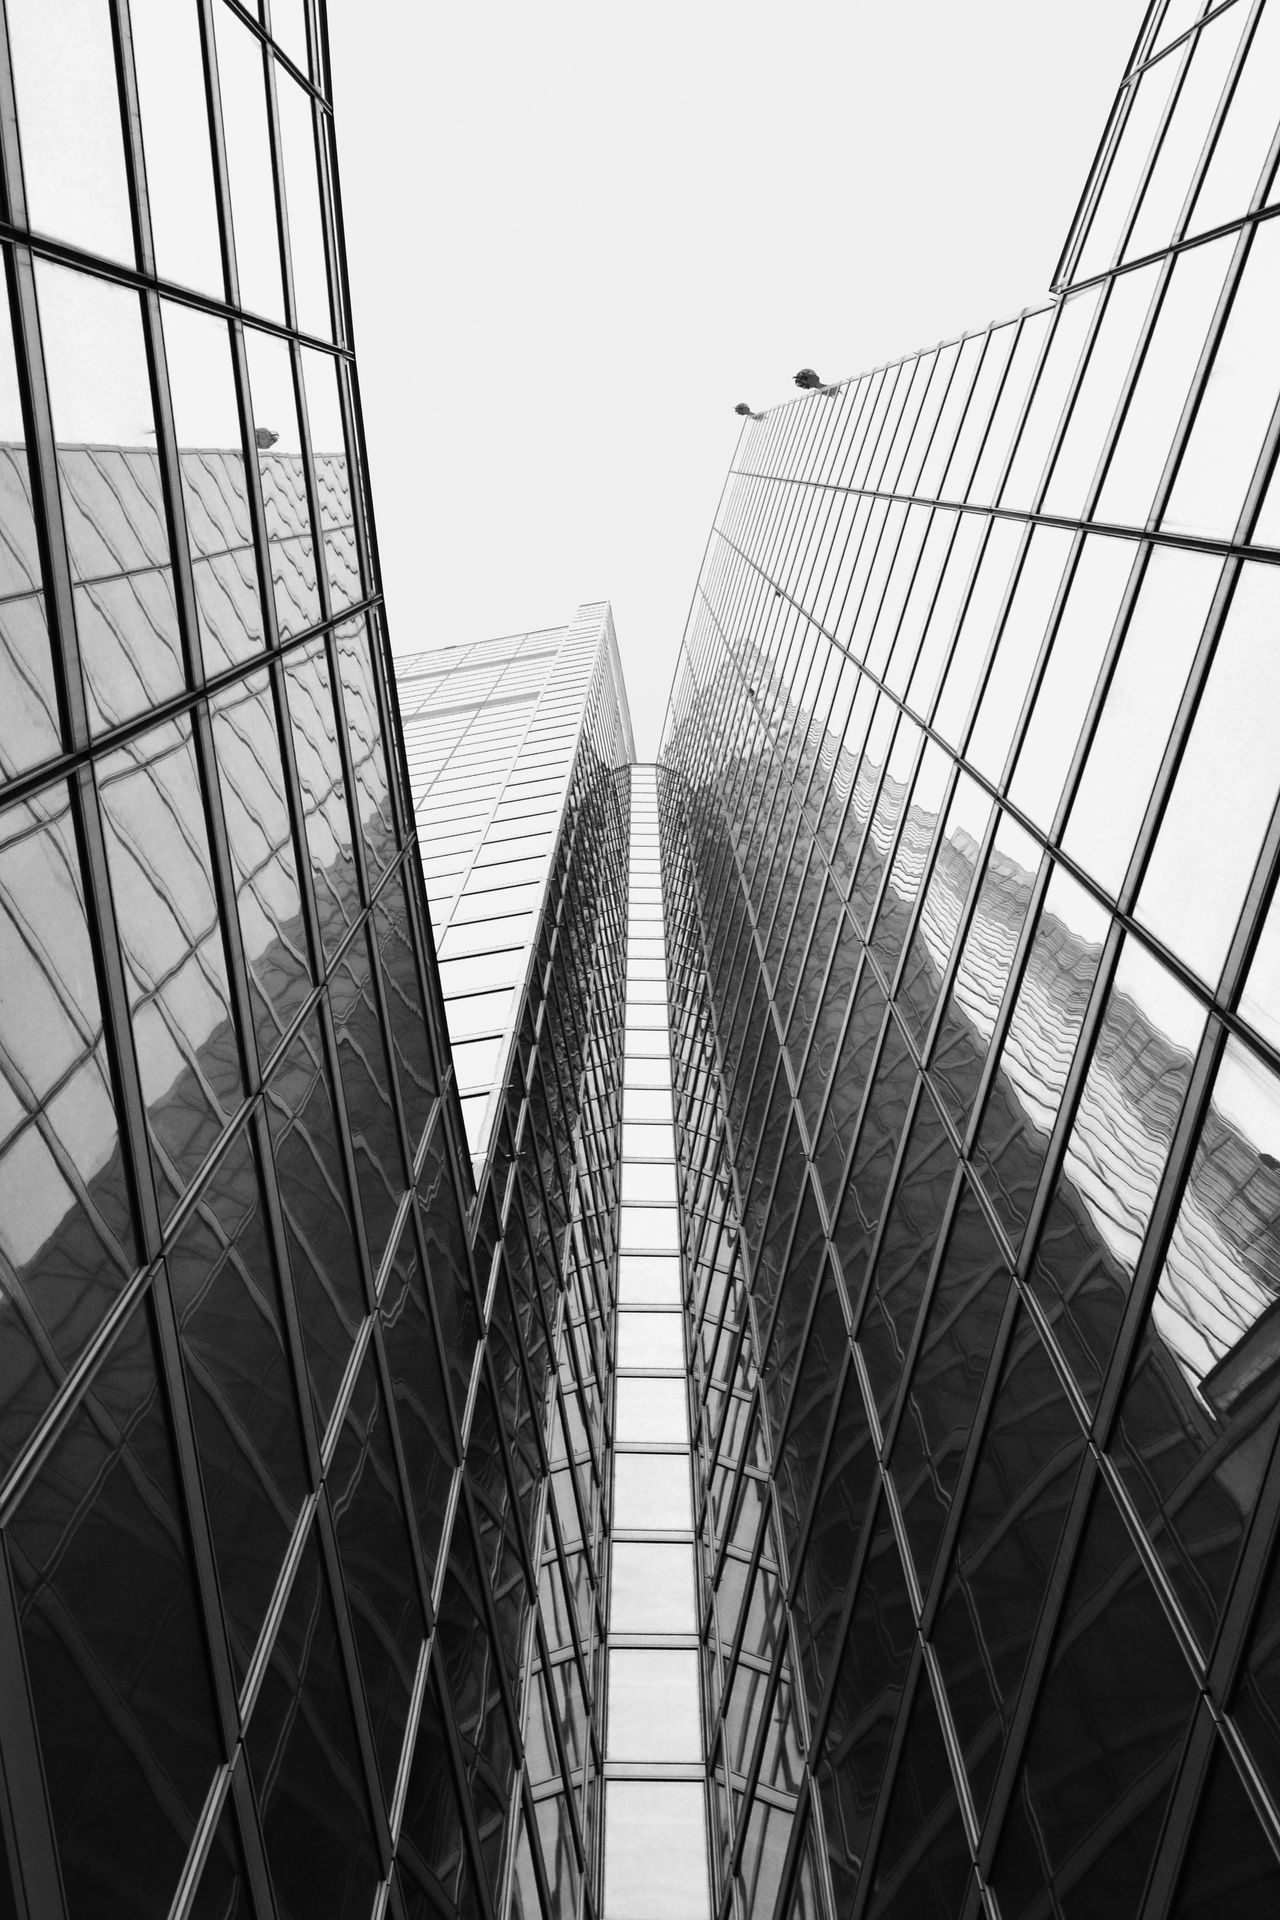 Skyscraper, 2013 Architecture Building Exterior Built Structure City Clear Sky Day EyeEm Best Shots Fine Art Photography Future Geometry High Key Italy Lines Looking Up Low Angle View Milan Milano Modern No People Outdoors Sky Skyscraper Windows The Architect - 2017 EyeEm Awards